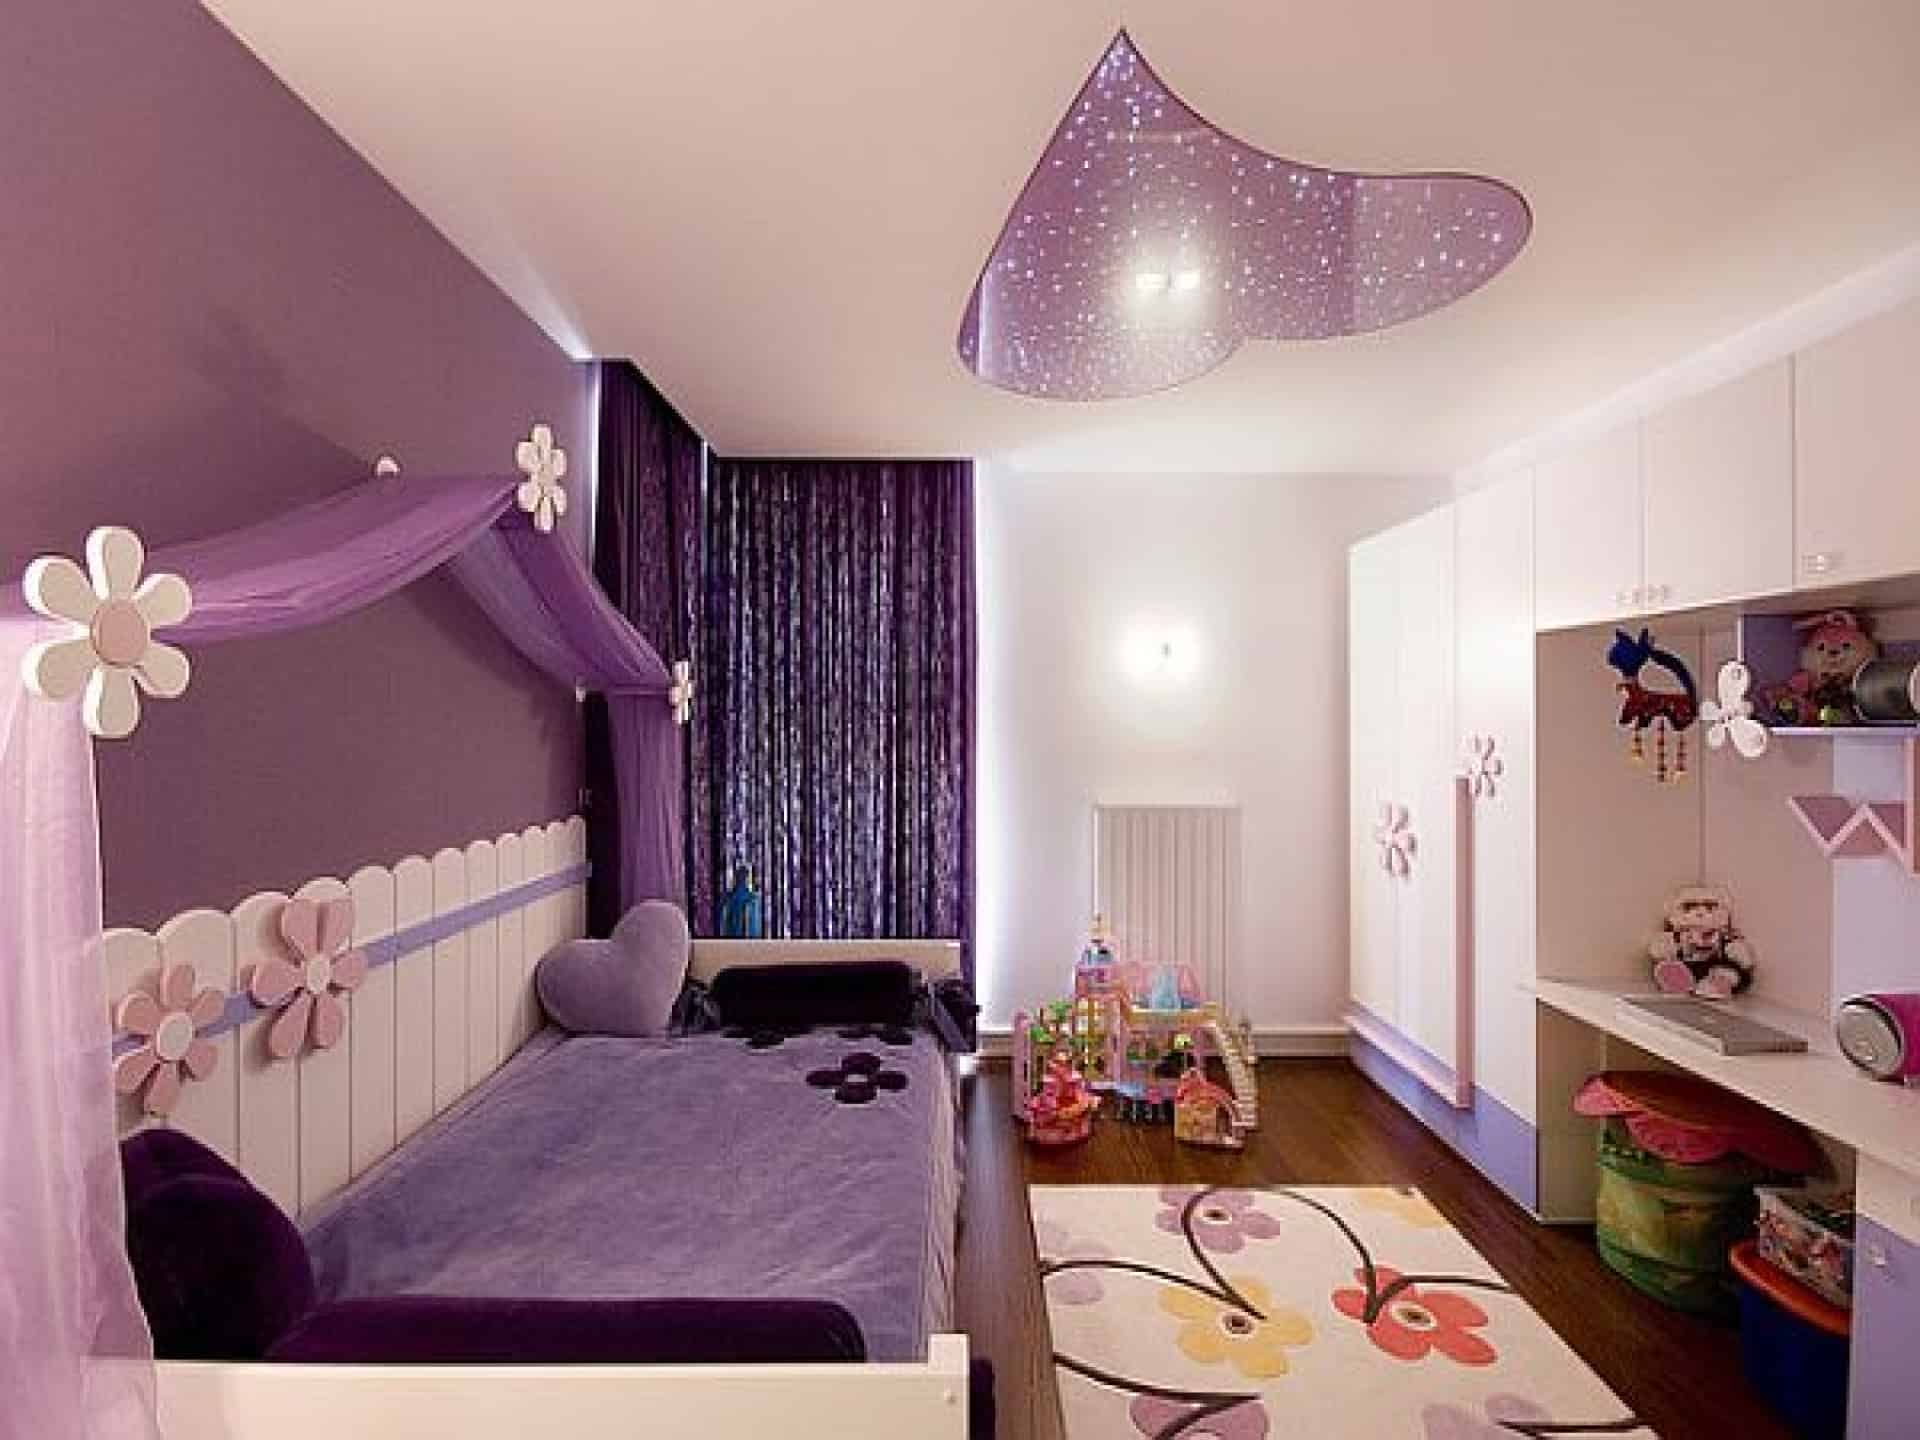 Home decor trends 2017 purple teen room house interior for Teen decor for bedroom